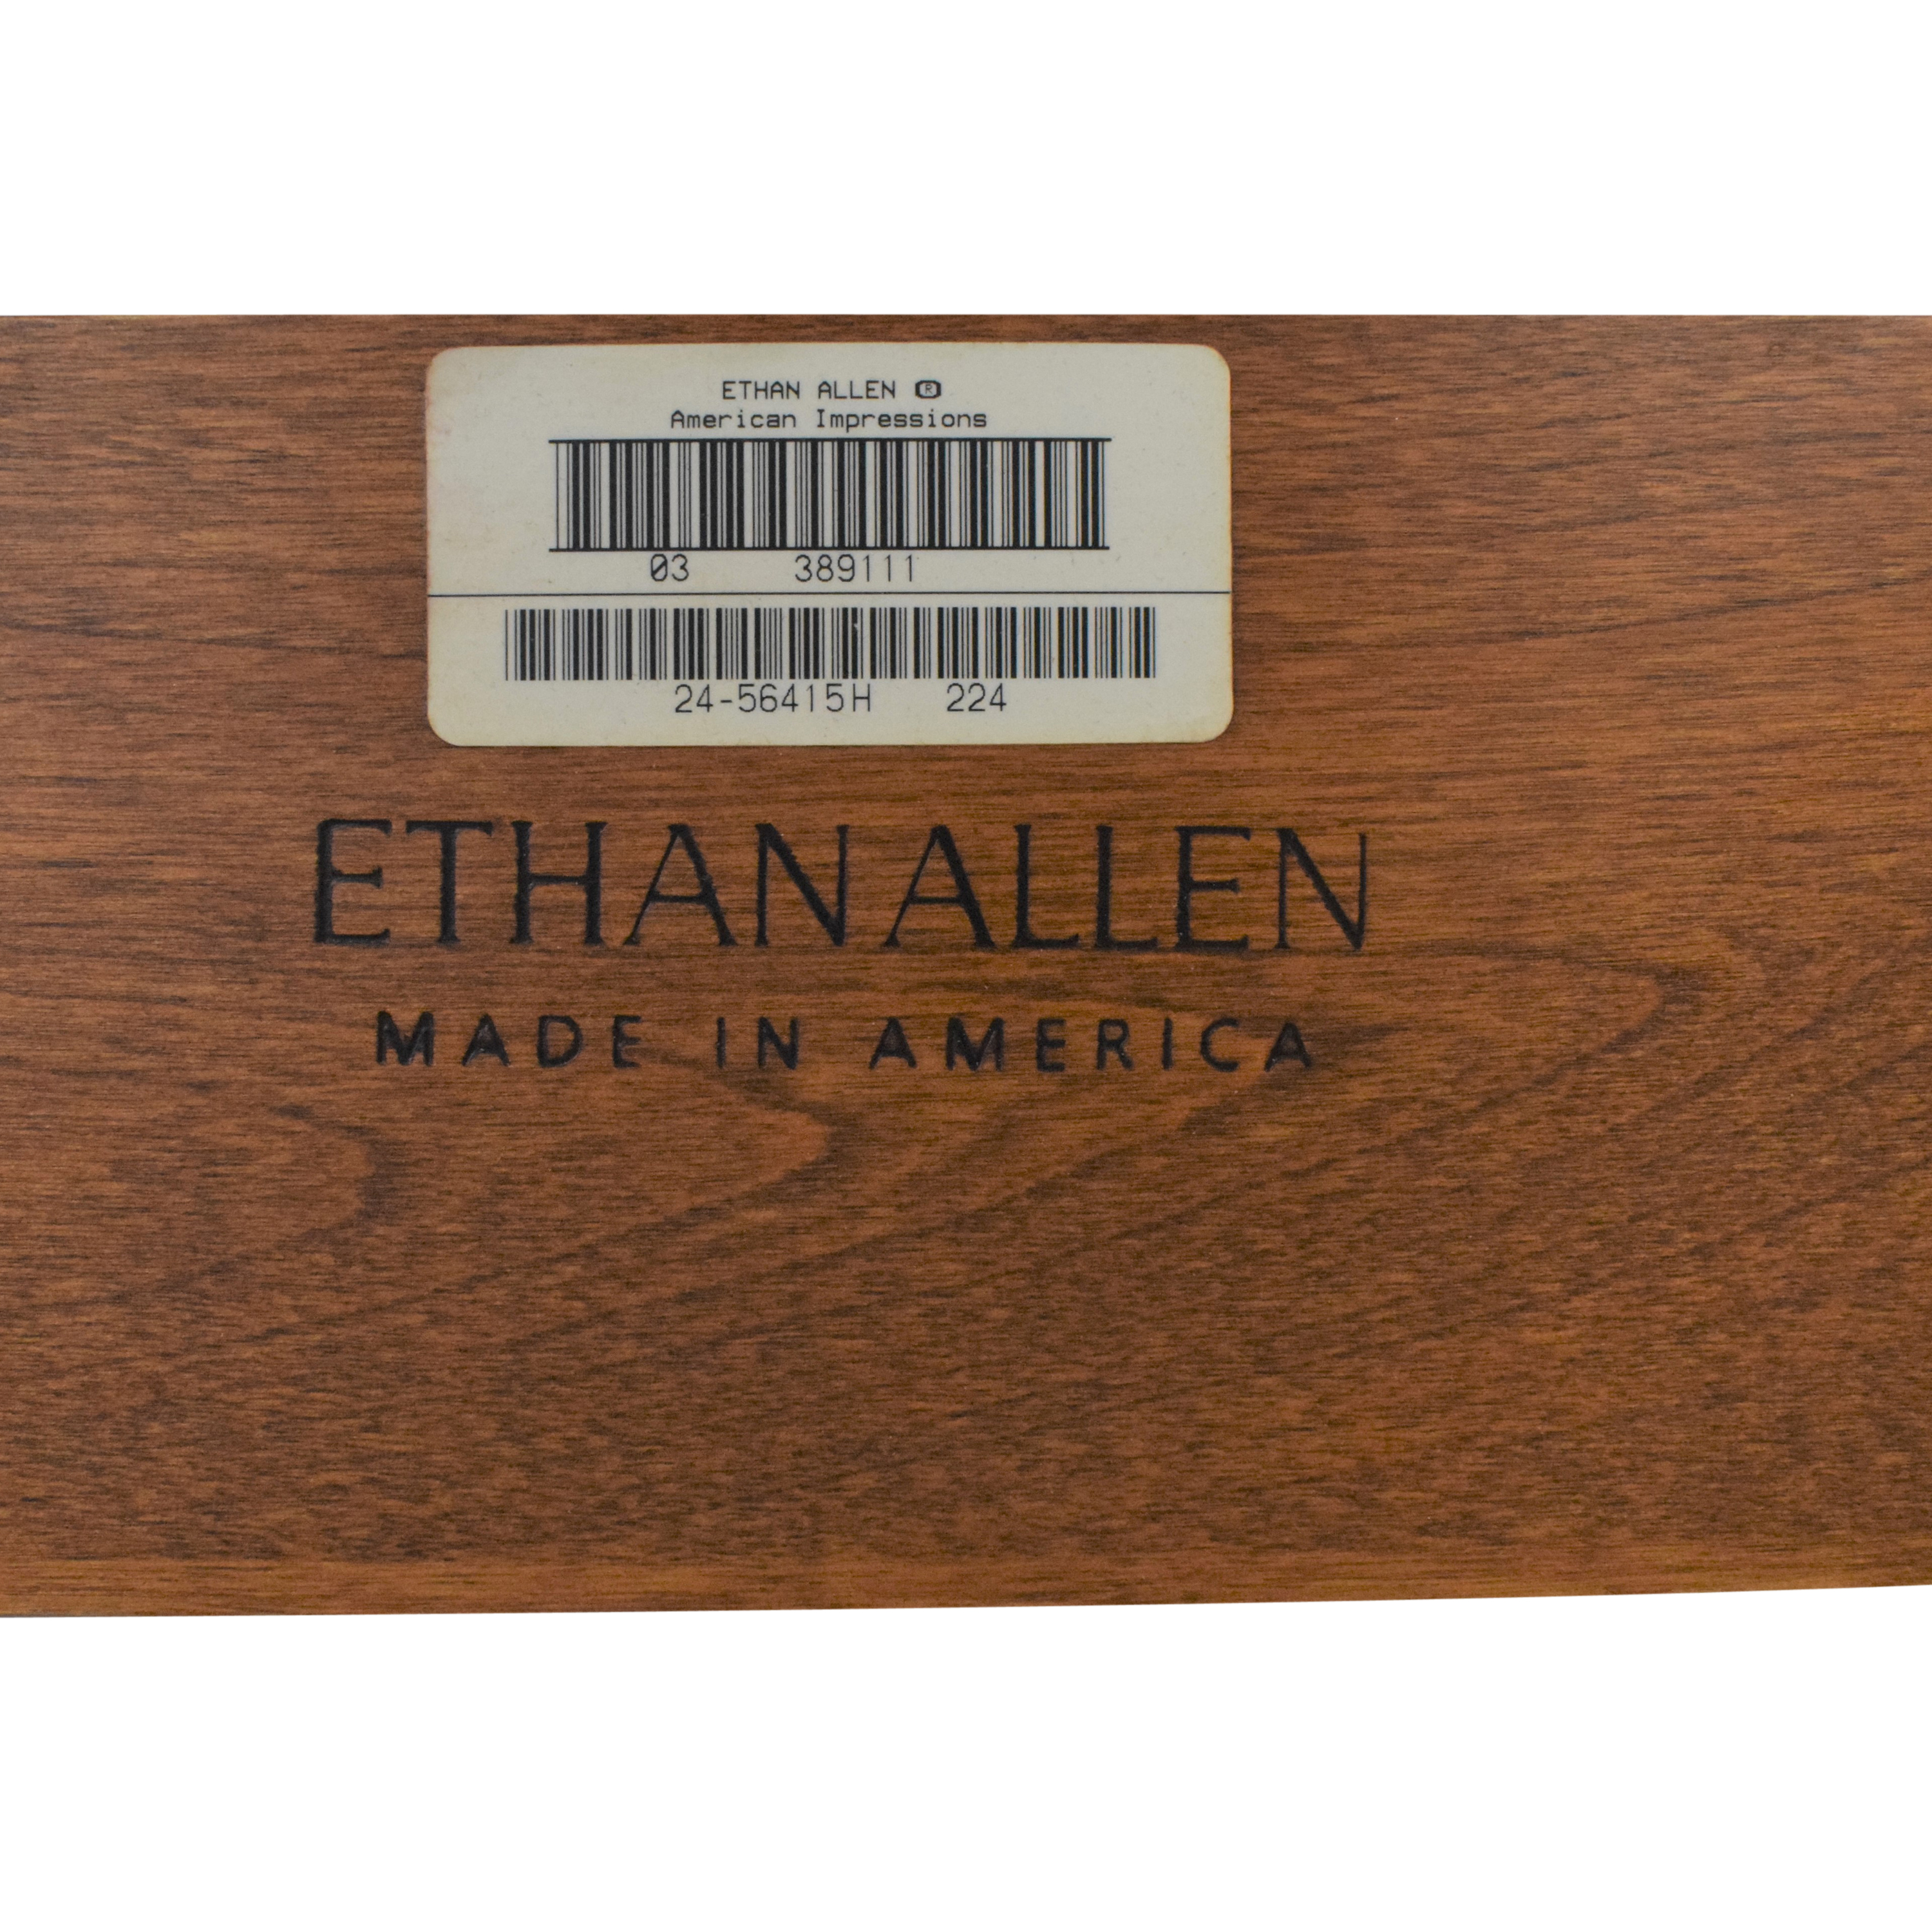 Ethan Allen American Impressions Queen Bed / Bed Frames